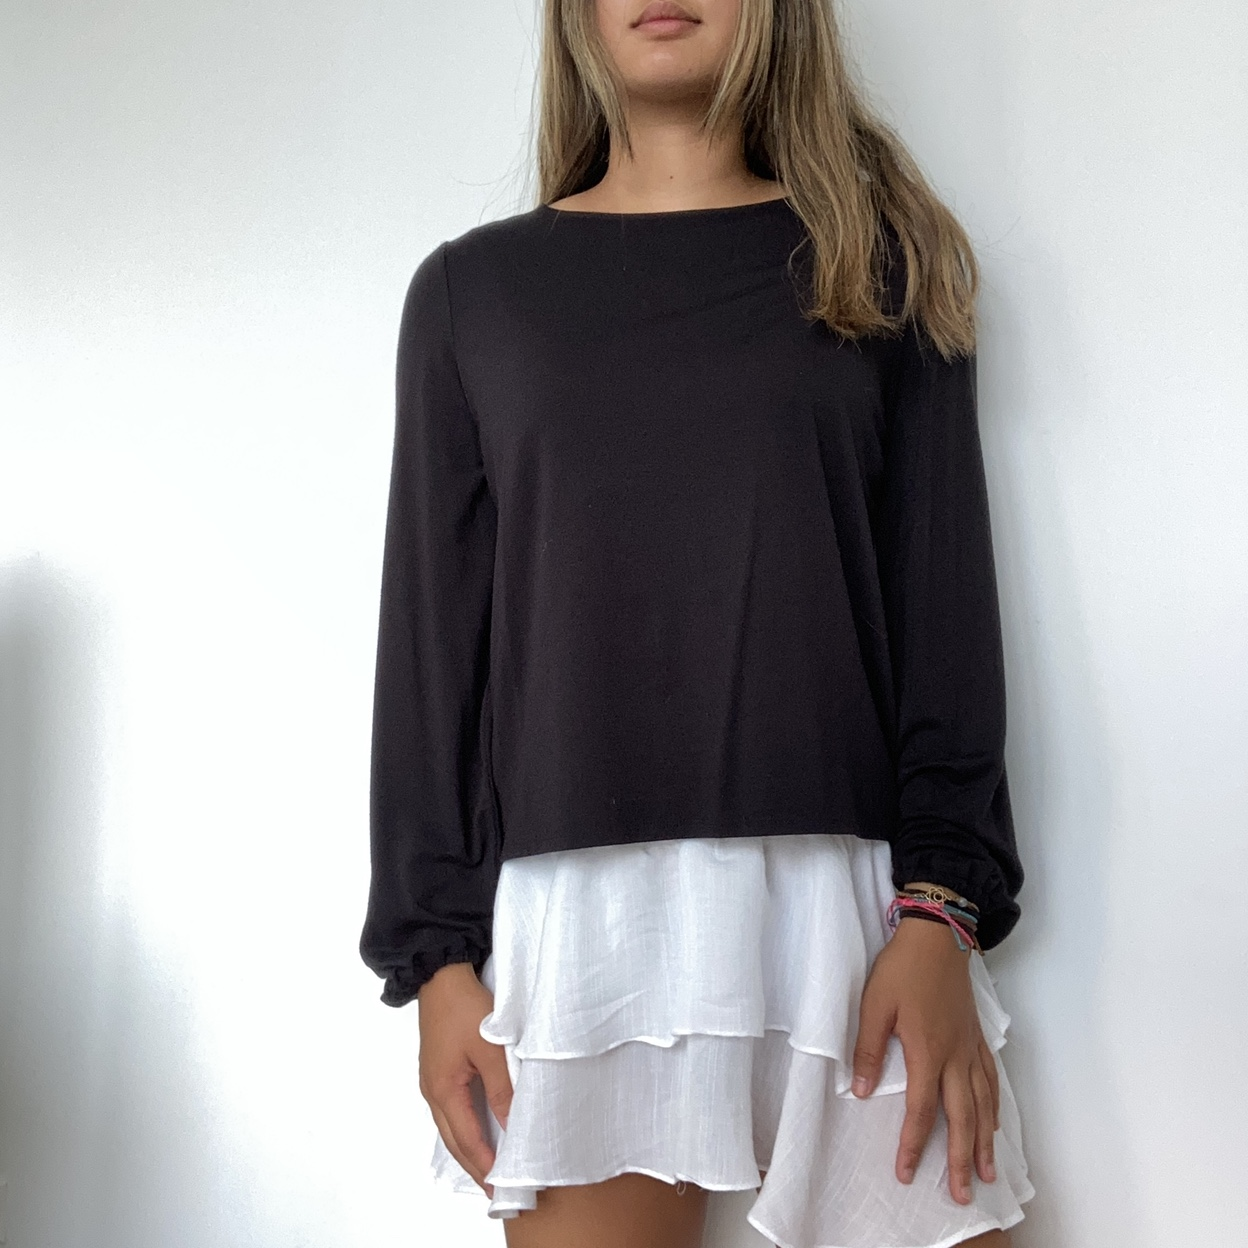 Product Image 1 - ☆ black ruched cuff shirt